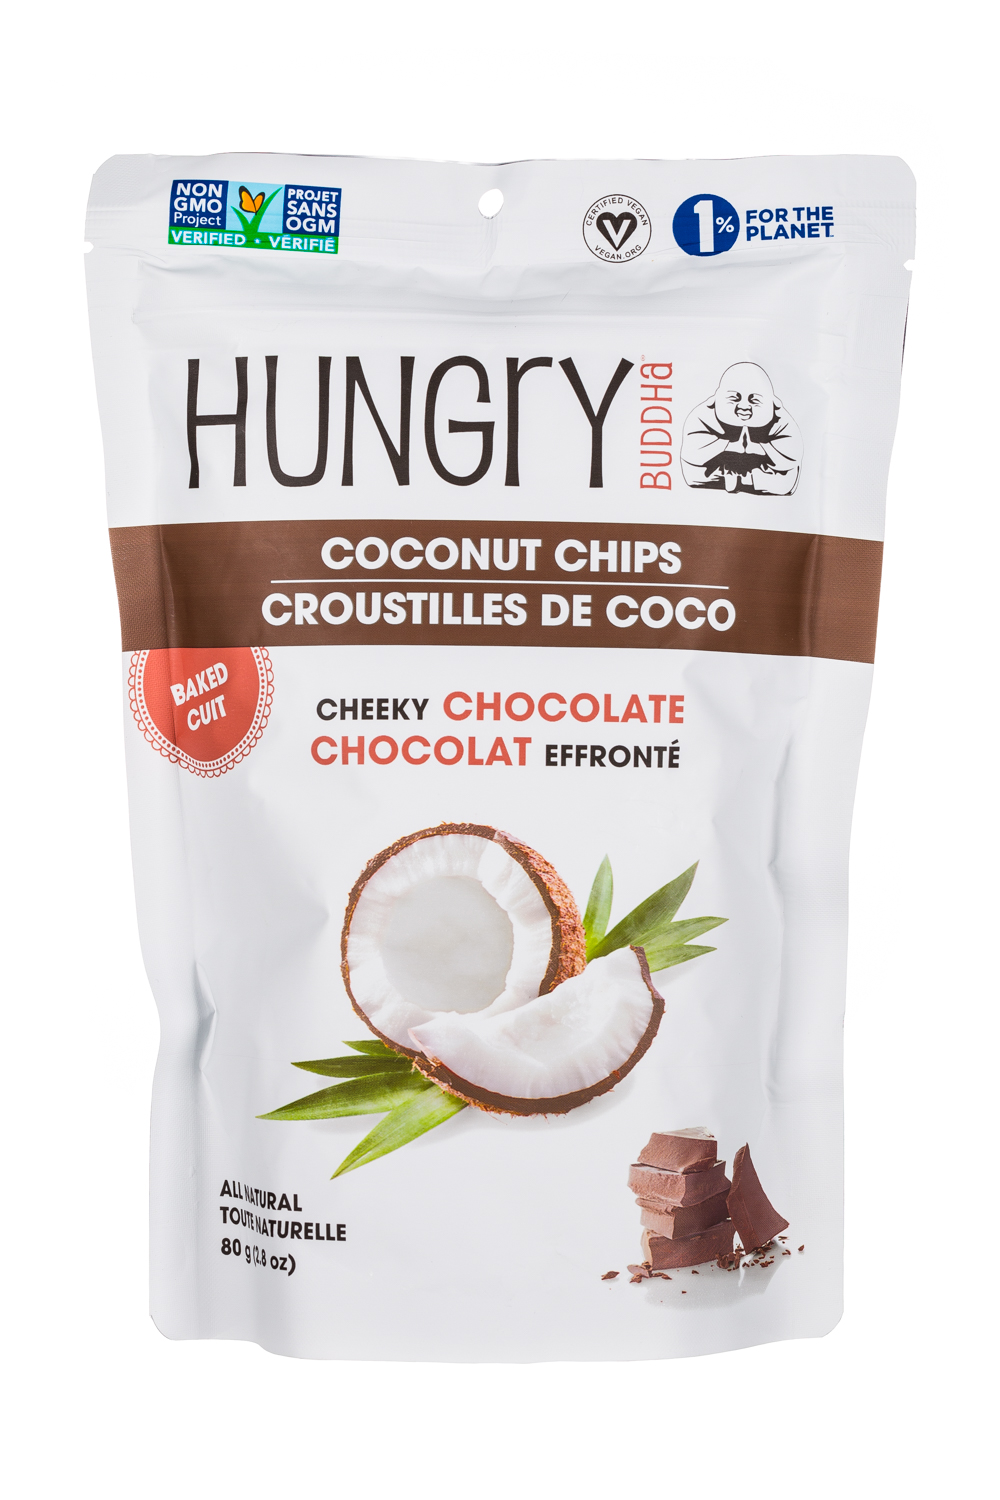 Cheeky Chocolate Chocolat Effronte- 80 g Pack